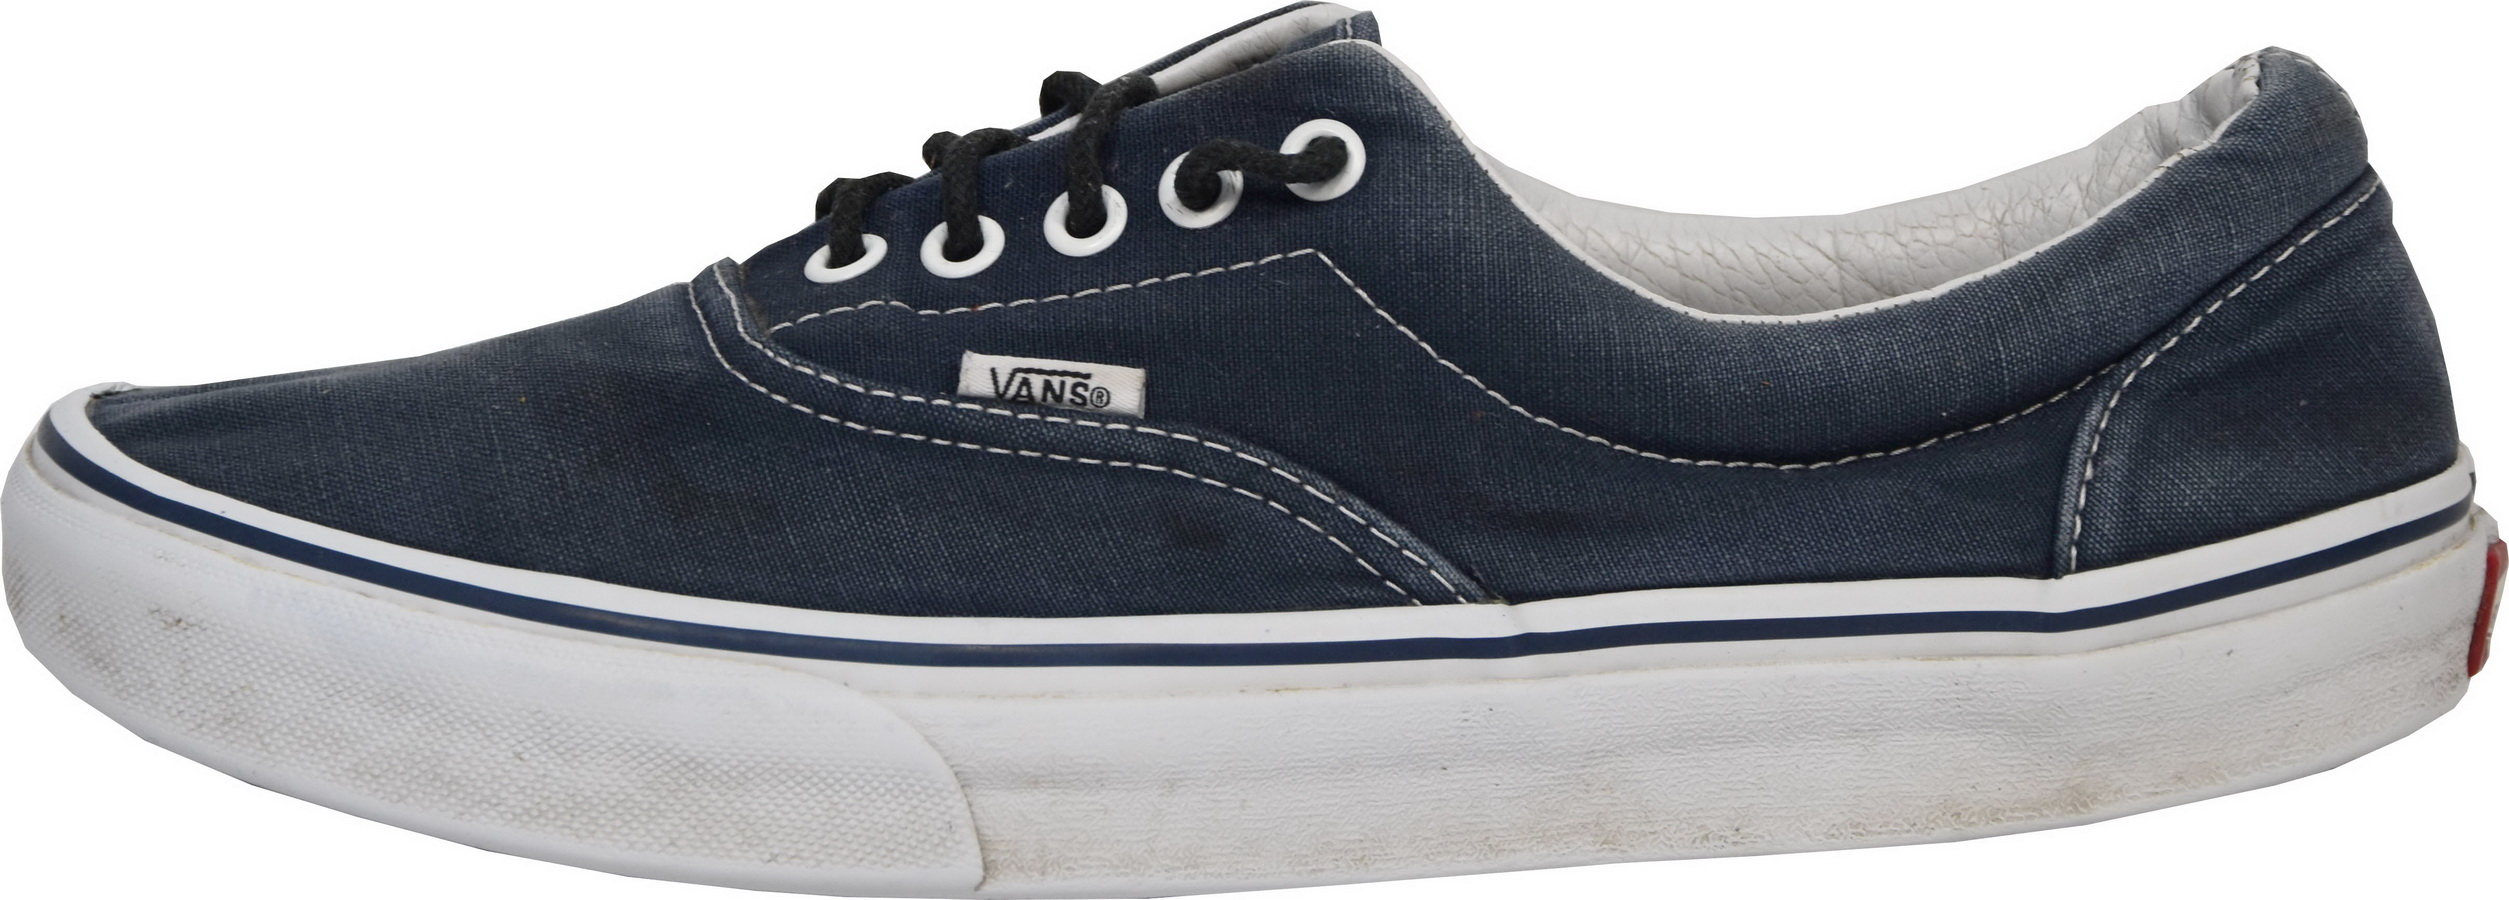 Q055 BASKETS VANS AUTHENTIC BLEU MARINE T.43 US 10 VALEUR 70